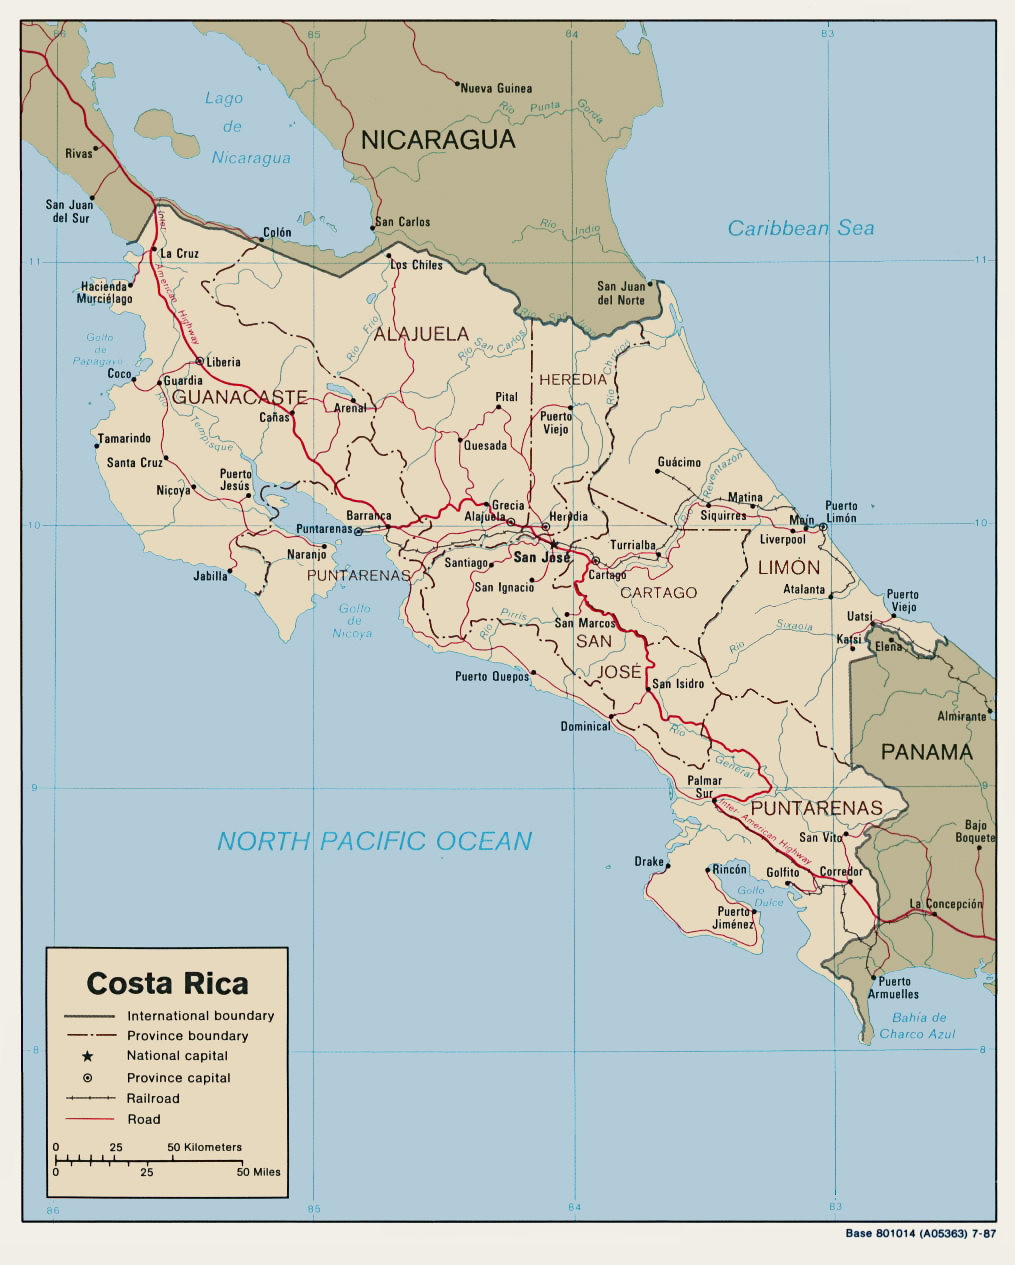 Costa Rica Political Map • Mapsof.net on map of tanzania, map of alajuela, map of the carribean, map of dominican republic, map of the yucatan, map of belize, map of americas, map of united states, map of atlantic ocean, map of puerto rico, map of nicaragua, map of the virgin islands, map of guatemala, map of bahamas, map of caribbean, map of honduras, map of el salvador, map of jamaica, map of bolivia, map of ecuador,